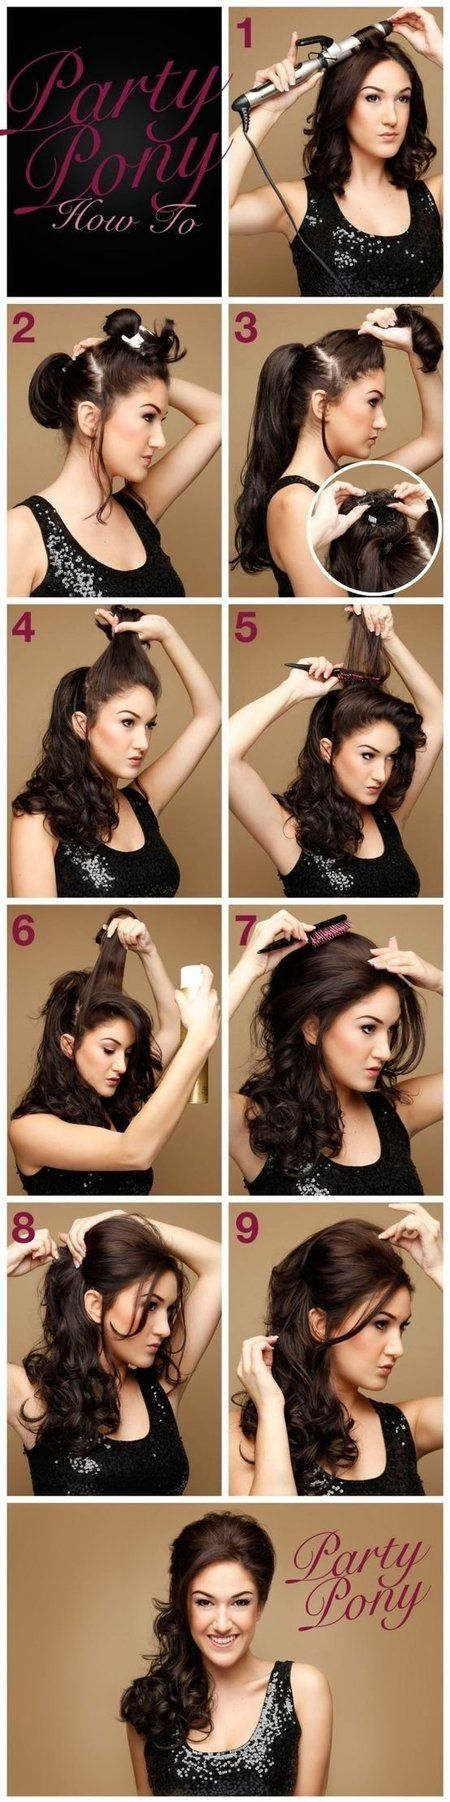 A Nice Hair Pictorial :D   From Renewed -Style.com